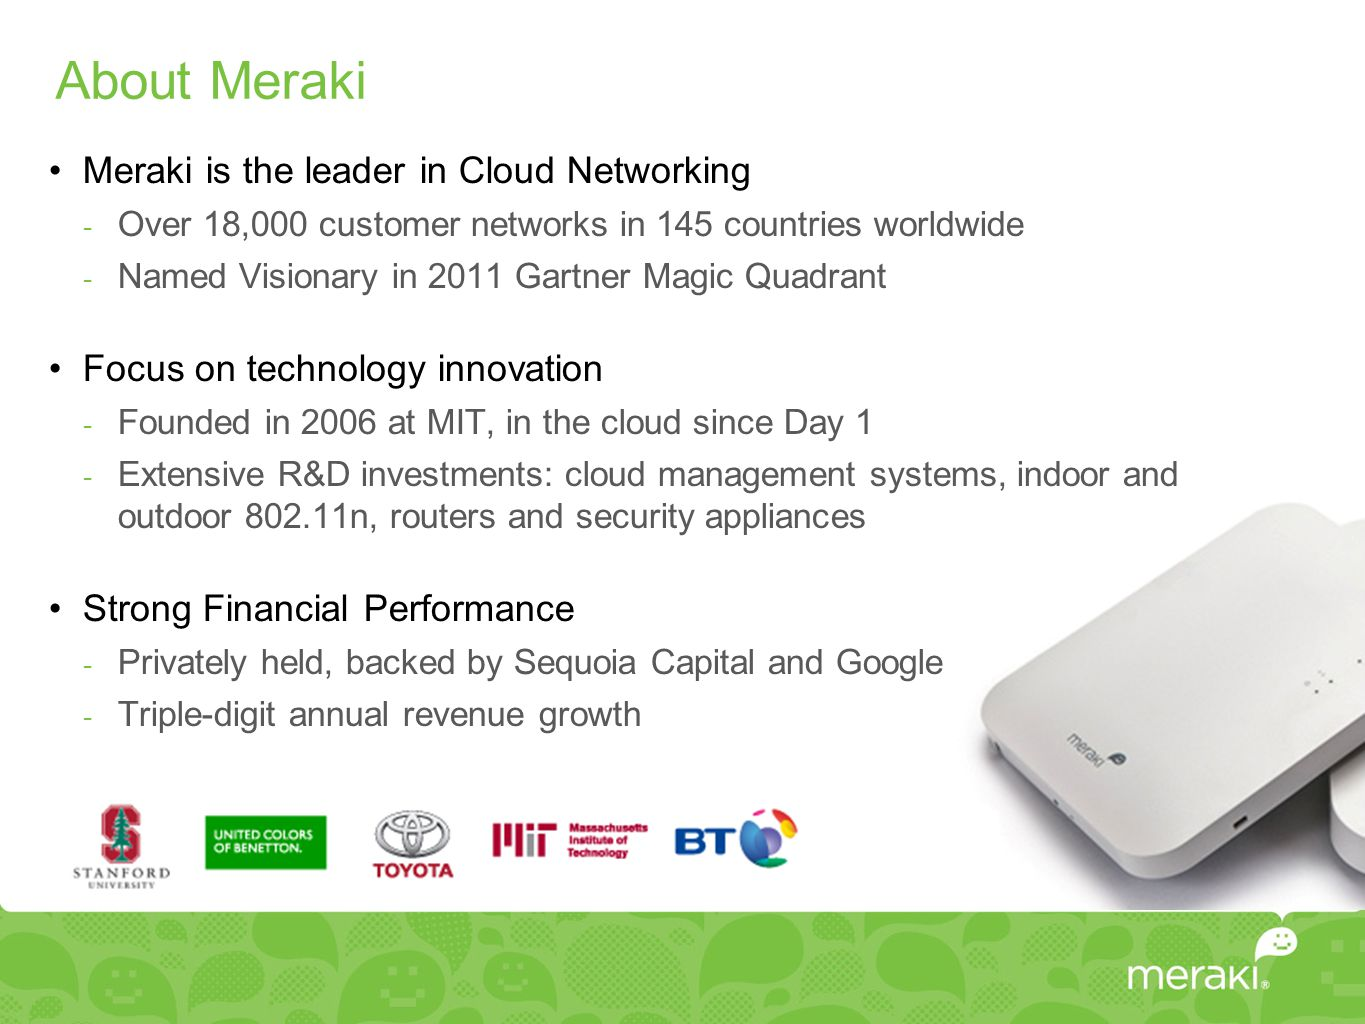 About Meraki Meraki is the leader in Cloud Networking  Over 18,000 customer networks in 145 countries worldwide  Named Visionary in 2011 Gartner Mag